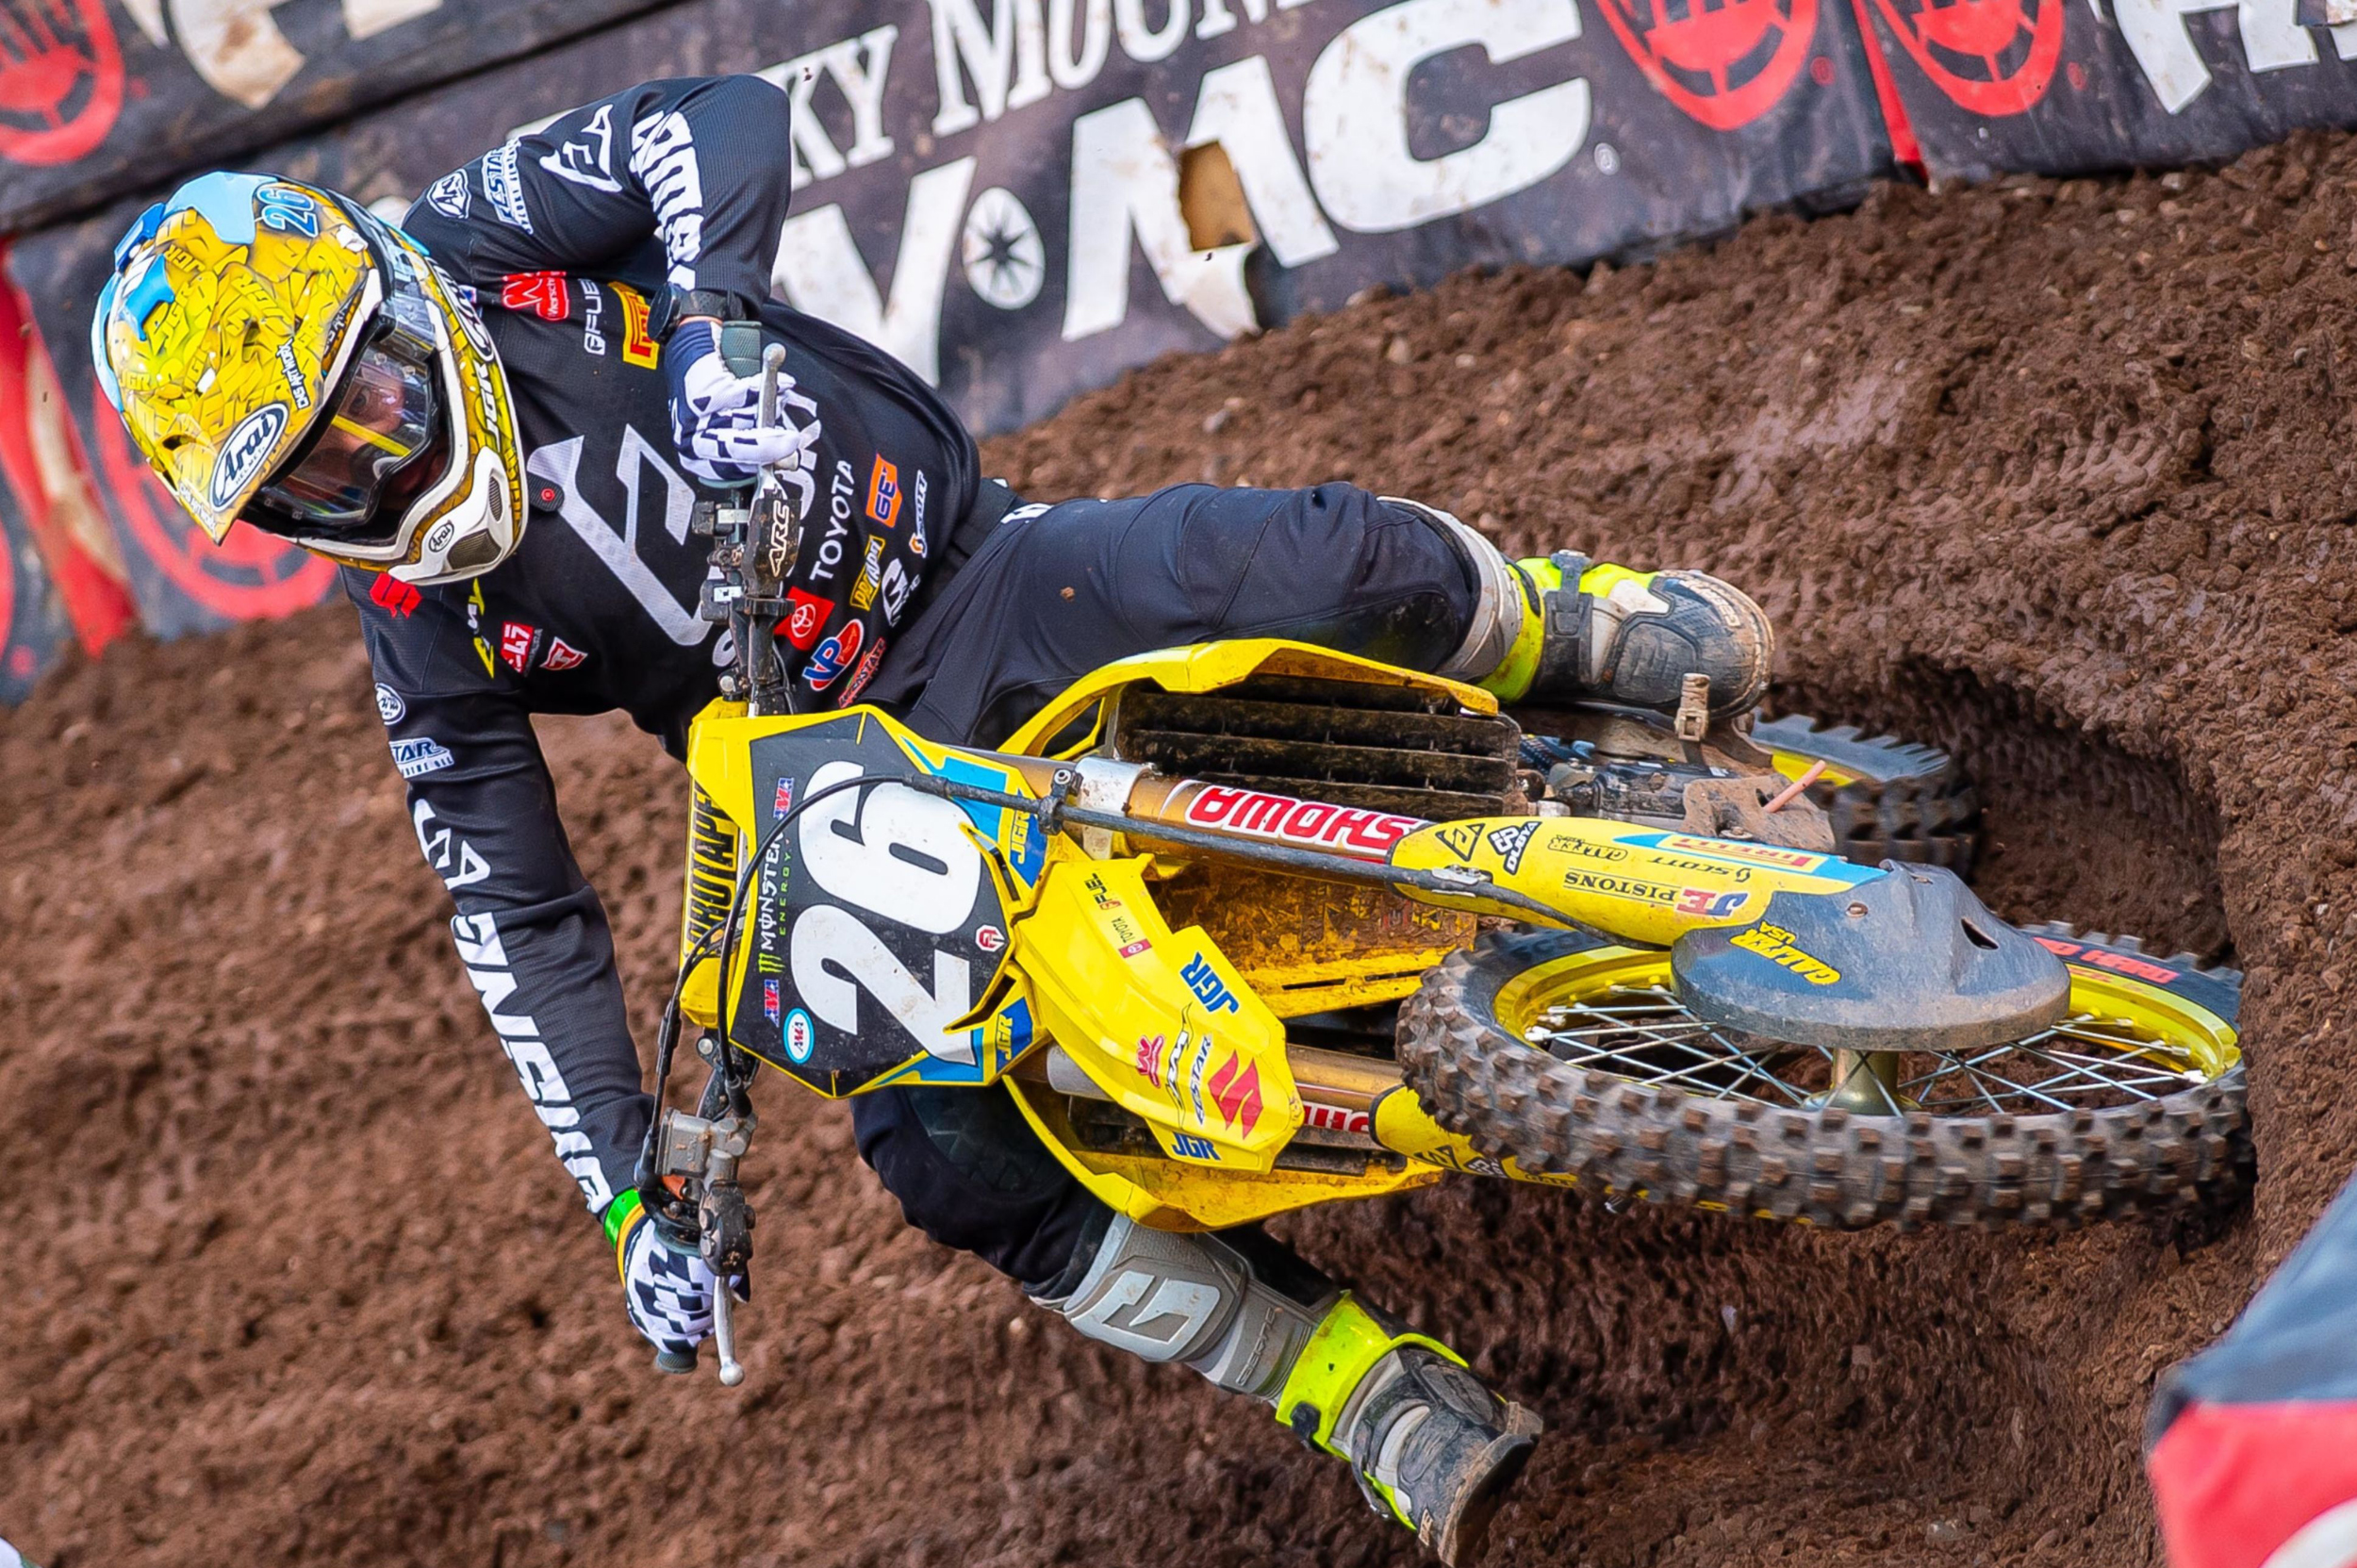 Alex Martin (#26) battles his way through the points standings in the 250 West Championship